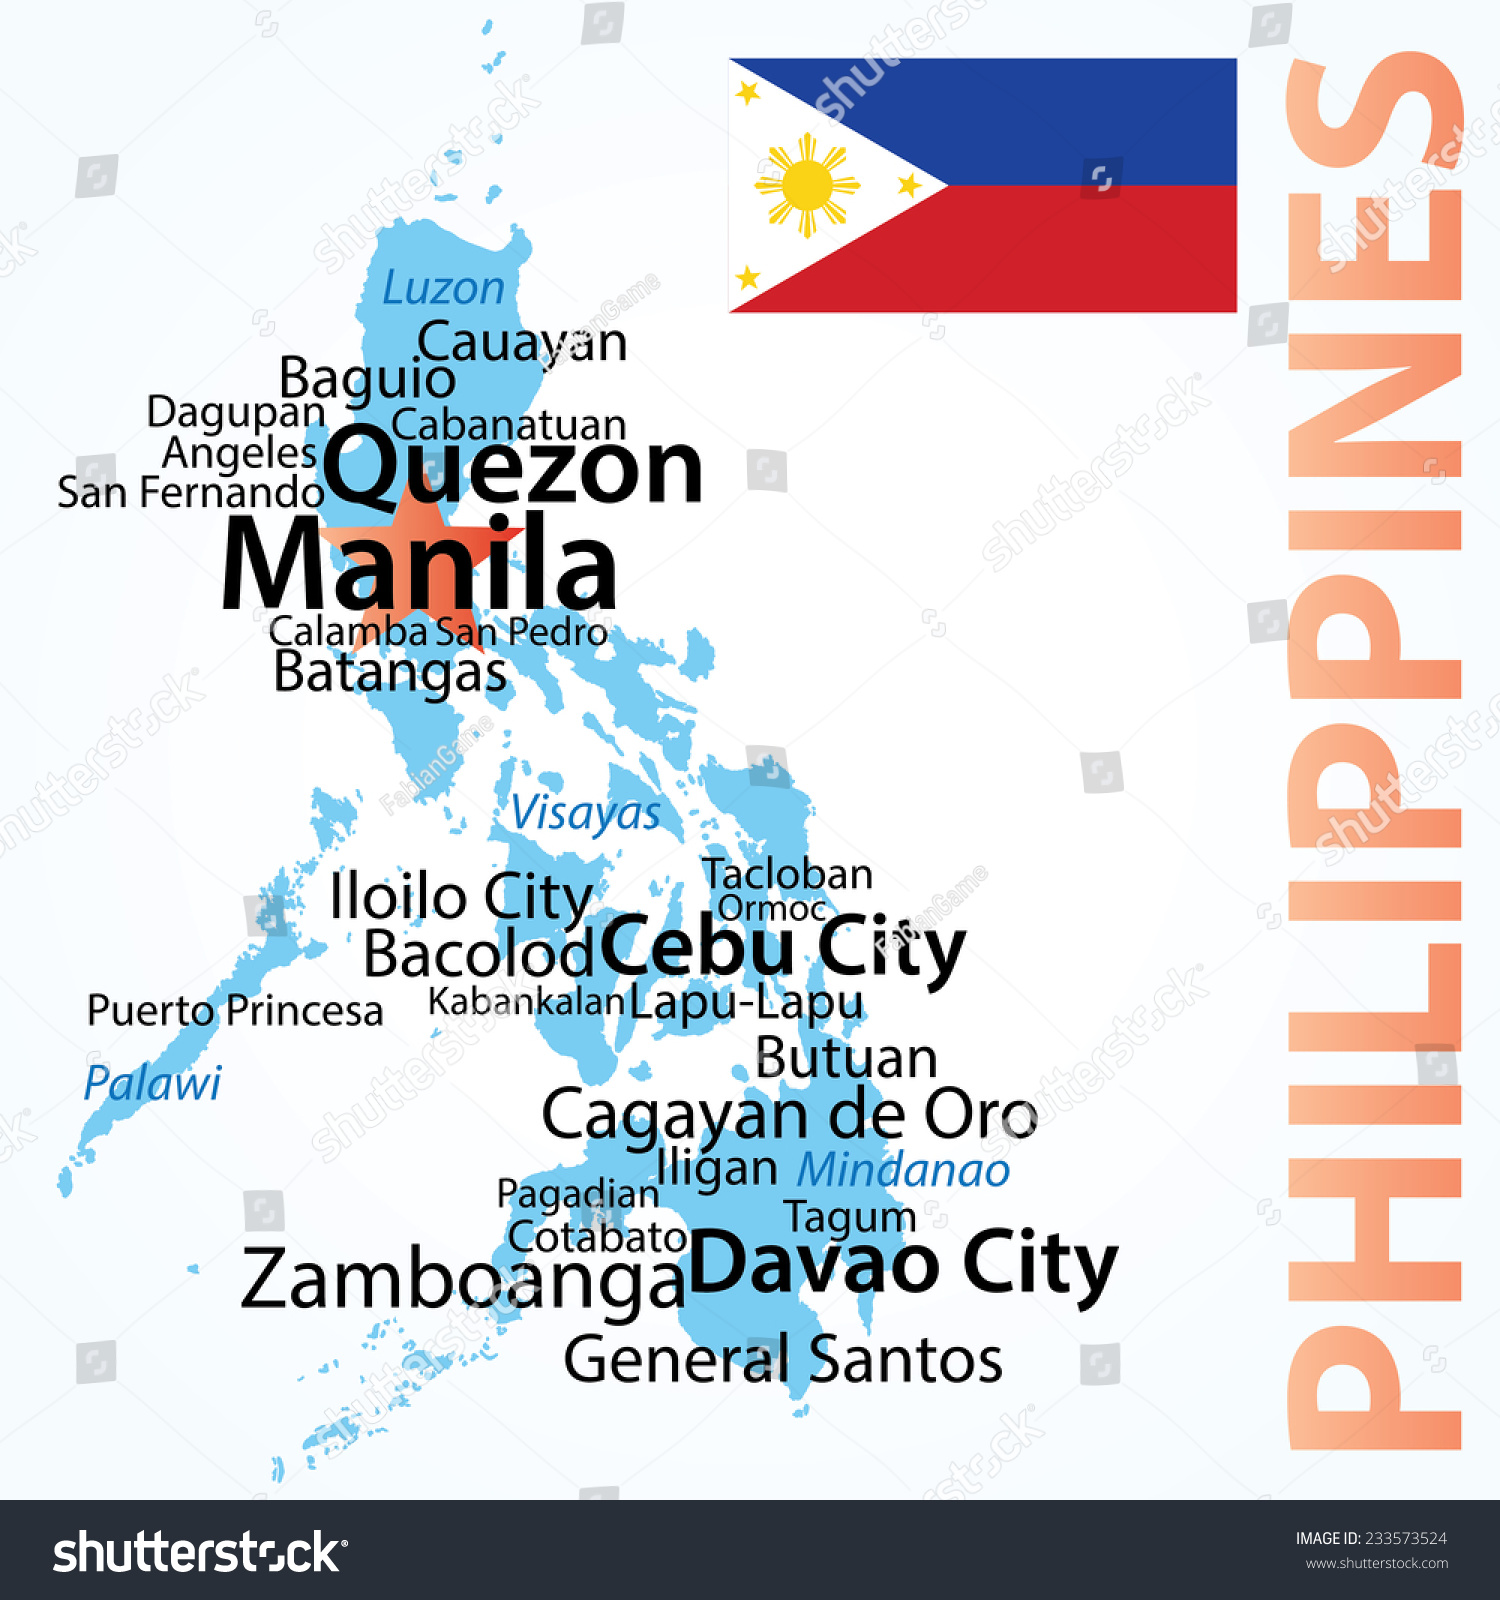 Philippines Vector Map Largest Cities Carefully Stock Vector - Map of the philippines cities